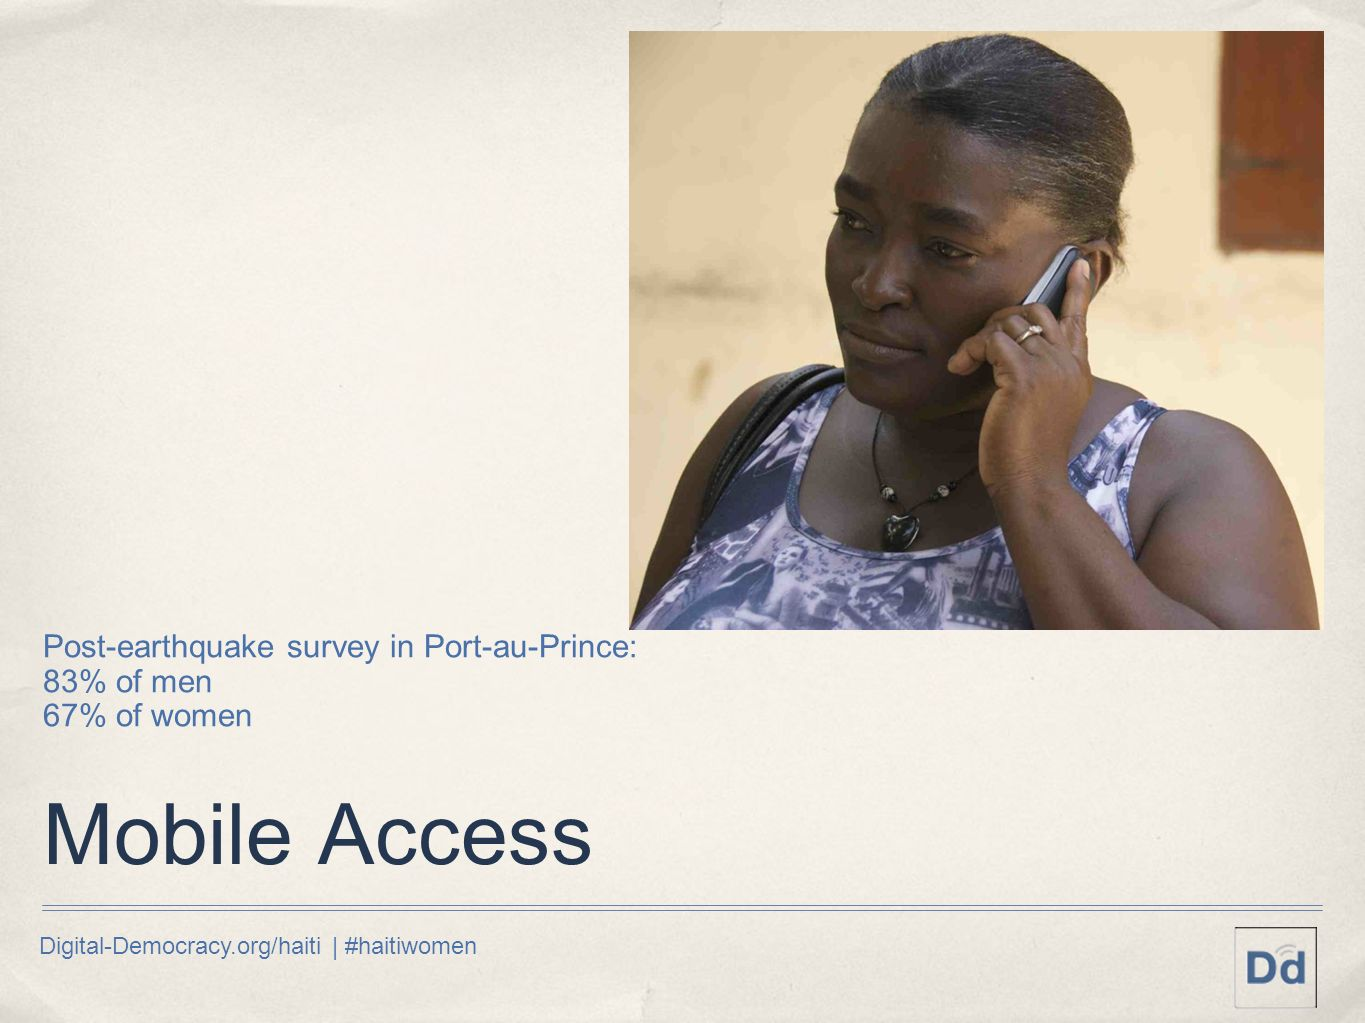 Digital-Democracy.org/haiti | #haitiwomen Mobile Access Post-earthquake survey in Port-au-Prince: 83% of men 67% of women